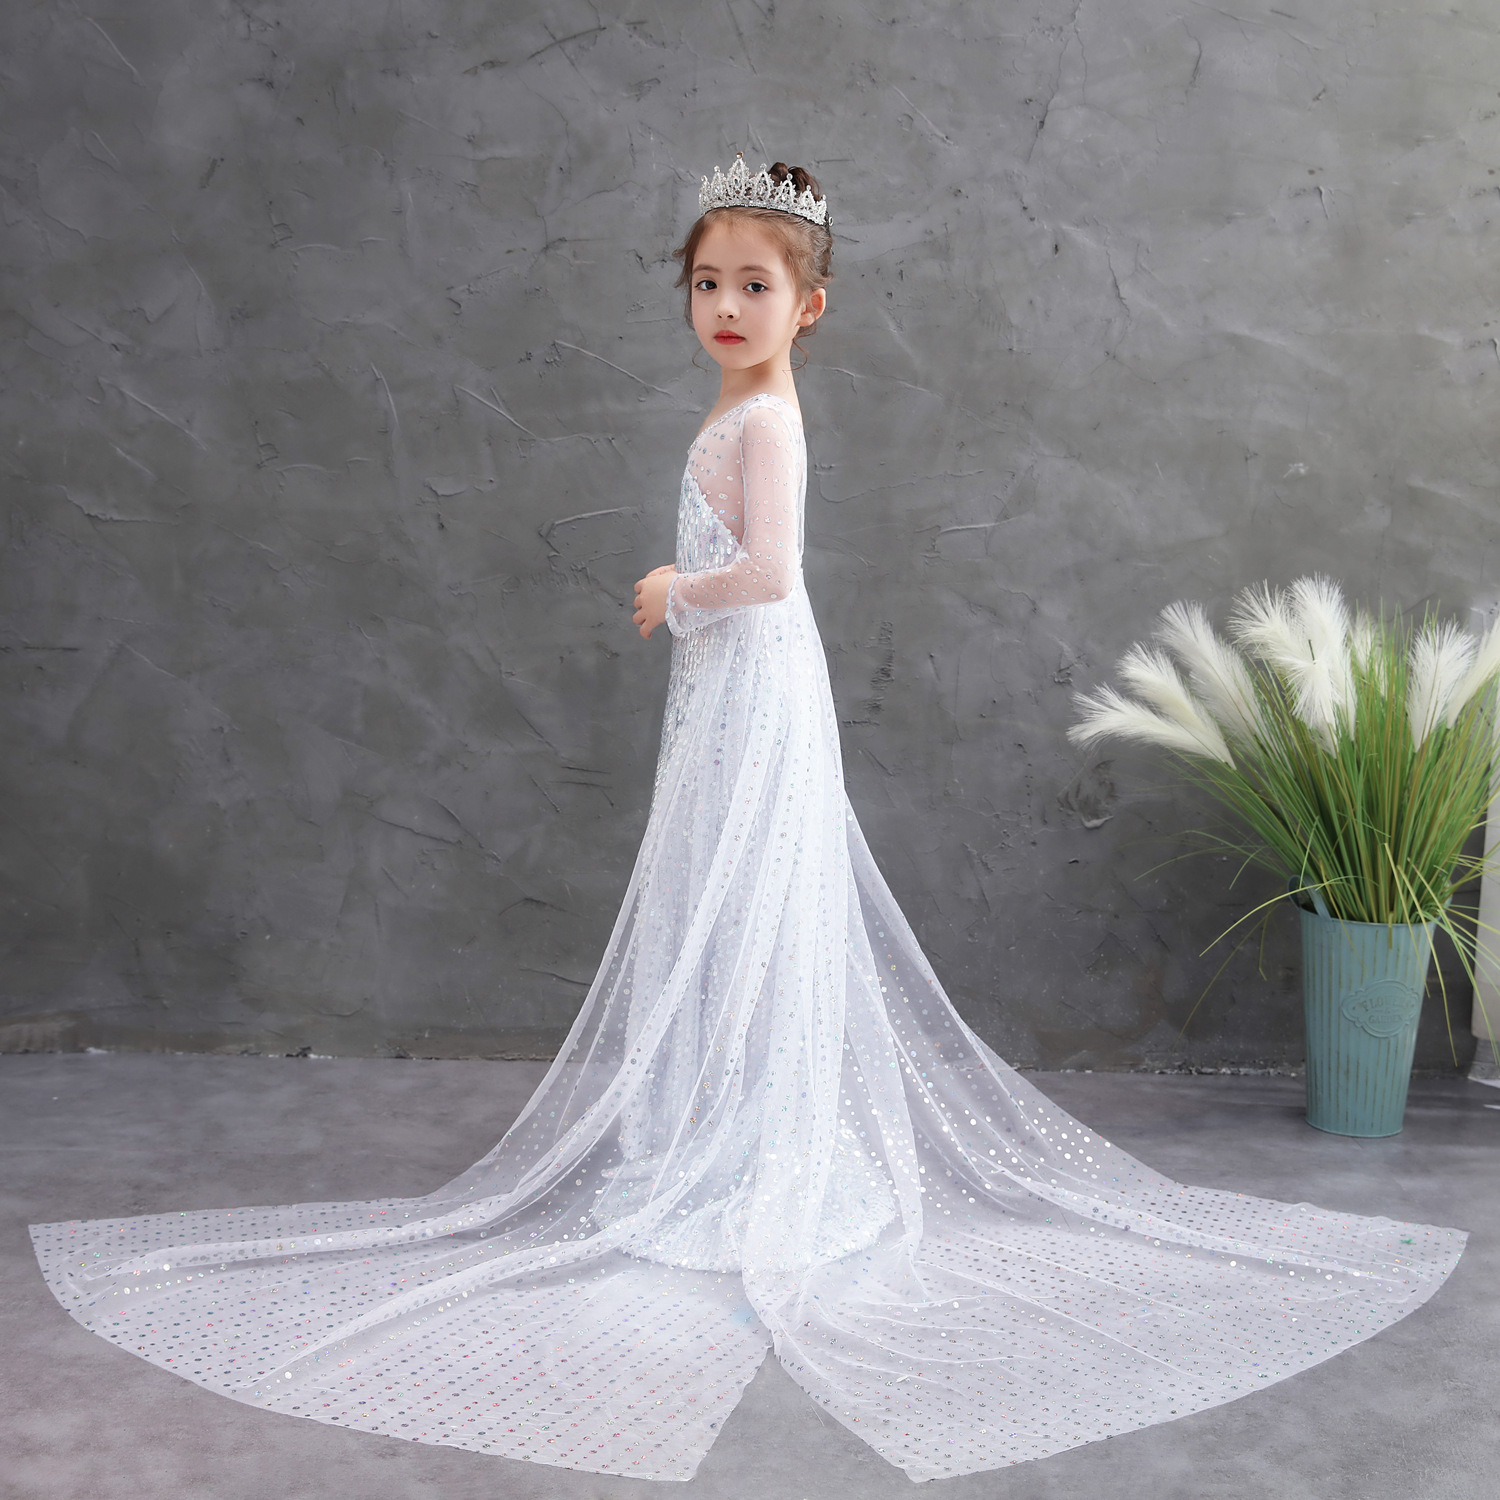 Frozen 2 Fancy Princess Elsa Dress Up Christmas Carnival Girls White Elsa Costume Kids Sequins Wedding Dresses Cosplay Clothes 8